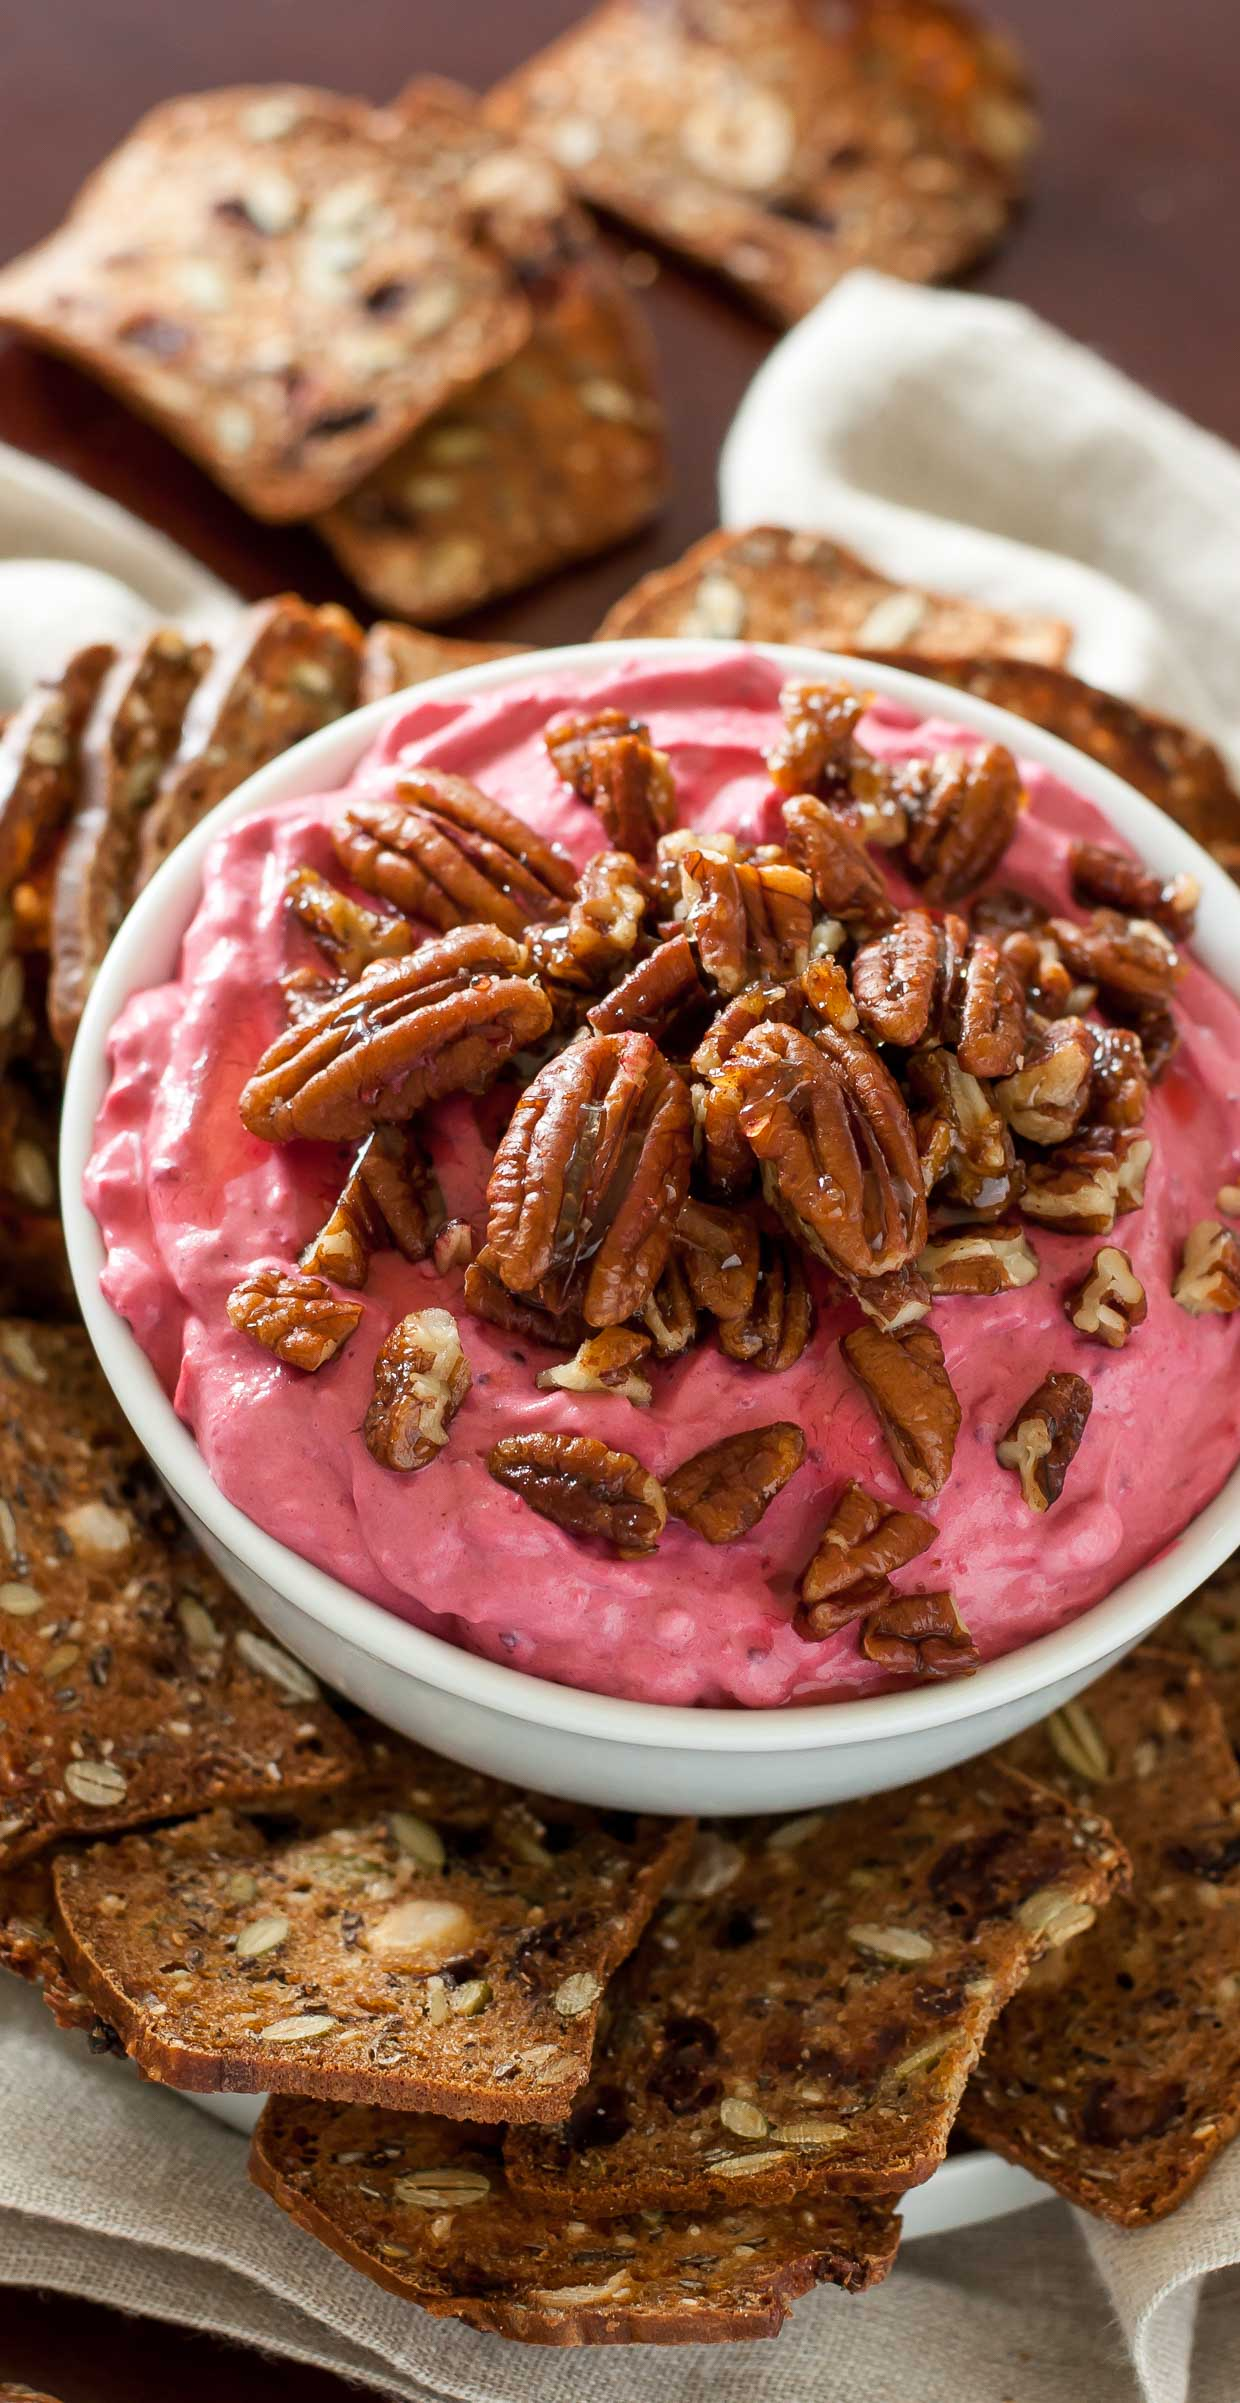 This fun and festive cranberry dip is swirled with cream cheese and honey and topped with the most delicious candied pecans. It's perfect for all your holiday needs from parties to potlucks to family gatherings galore!